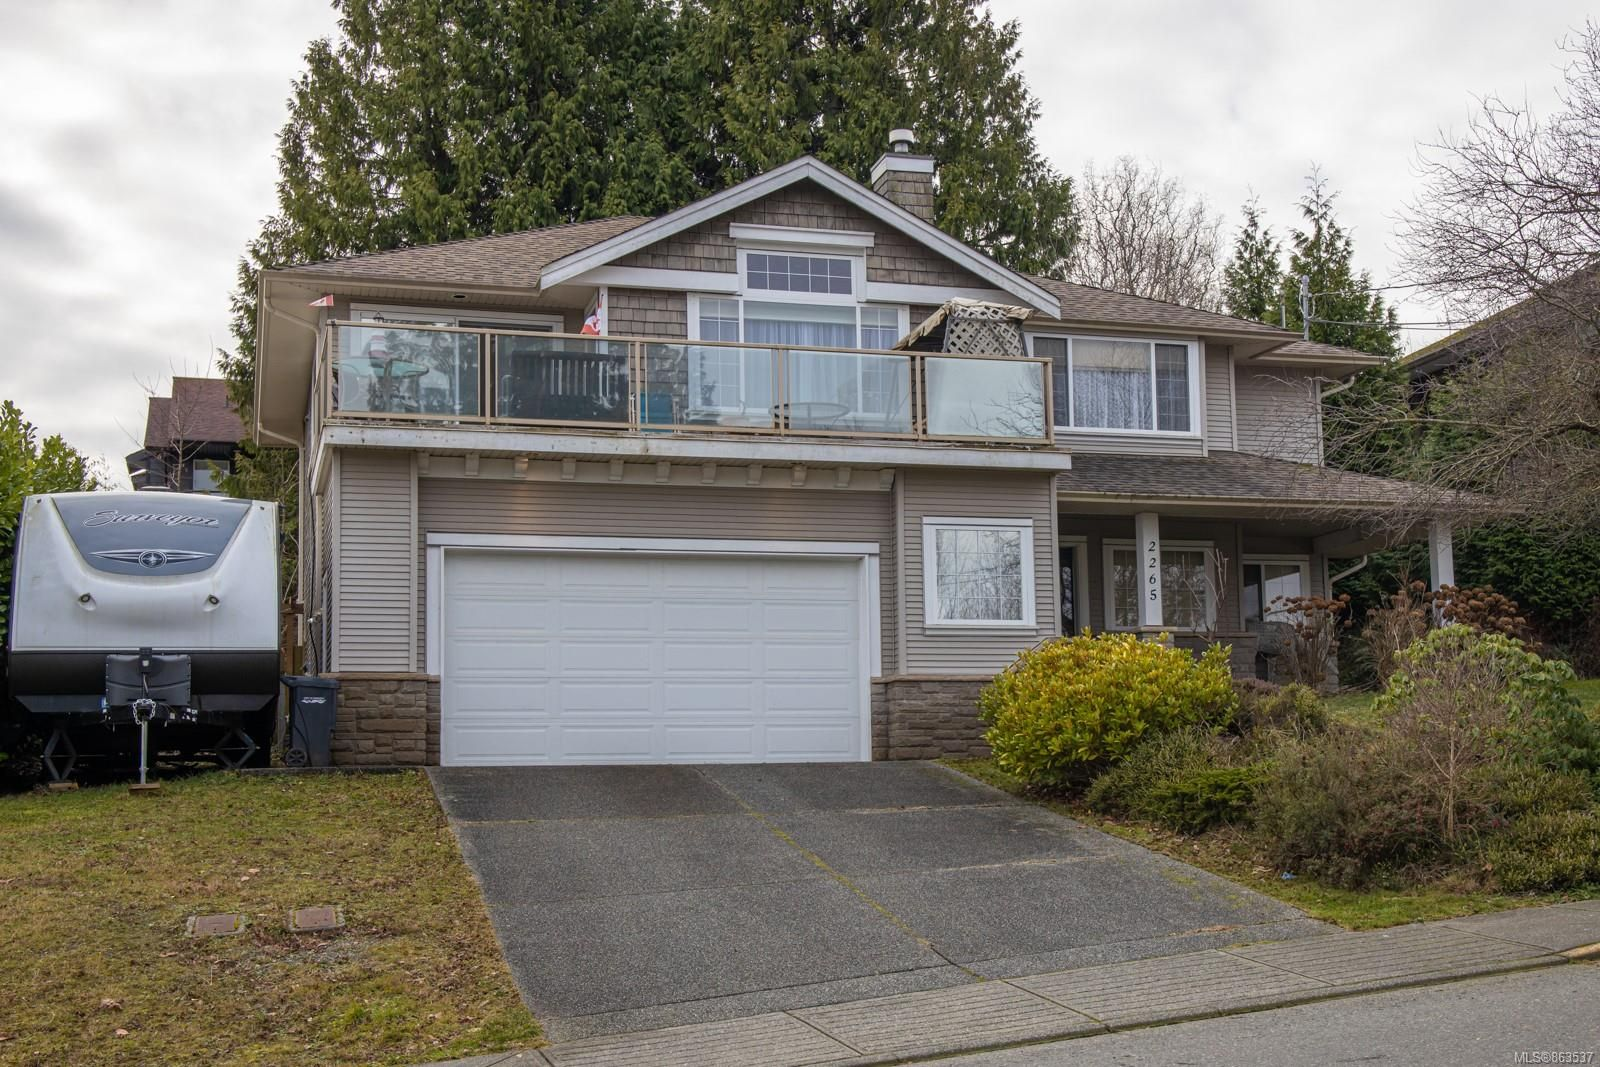 Main Photo: 2265 Arbot Rd in : Na South Jingle Pot House for sale (Nanaimo)  : MLS®# 863537